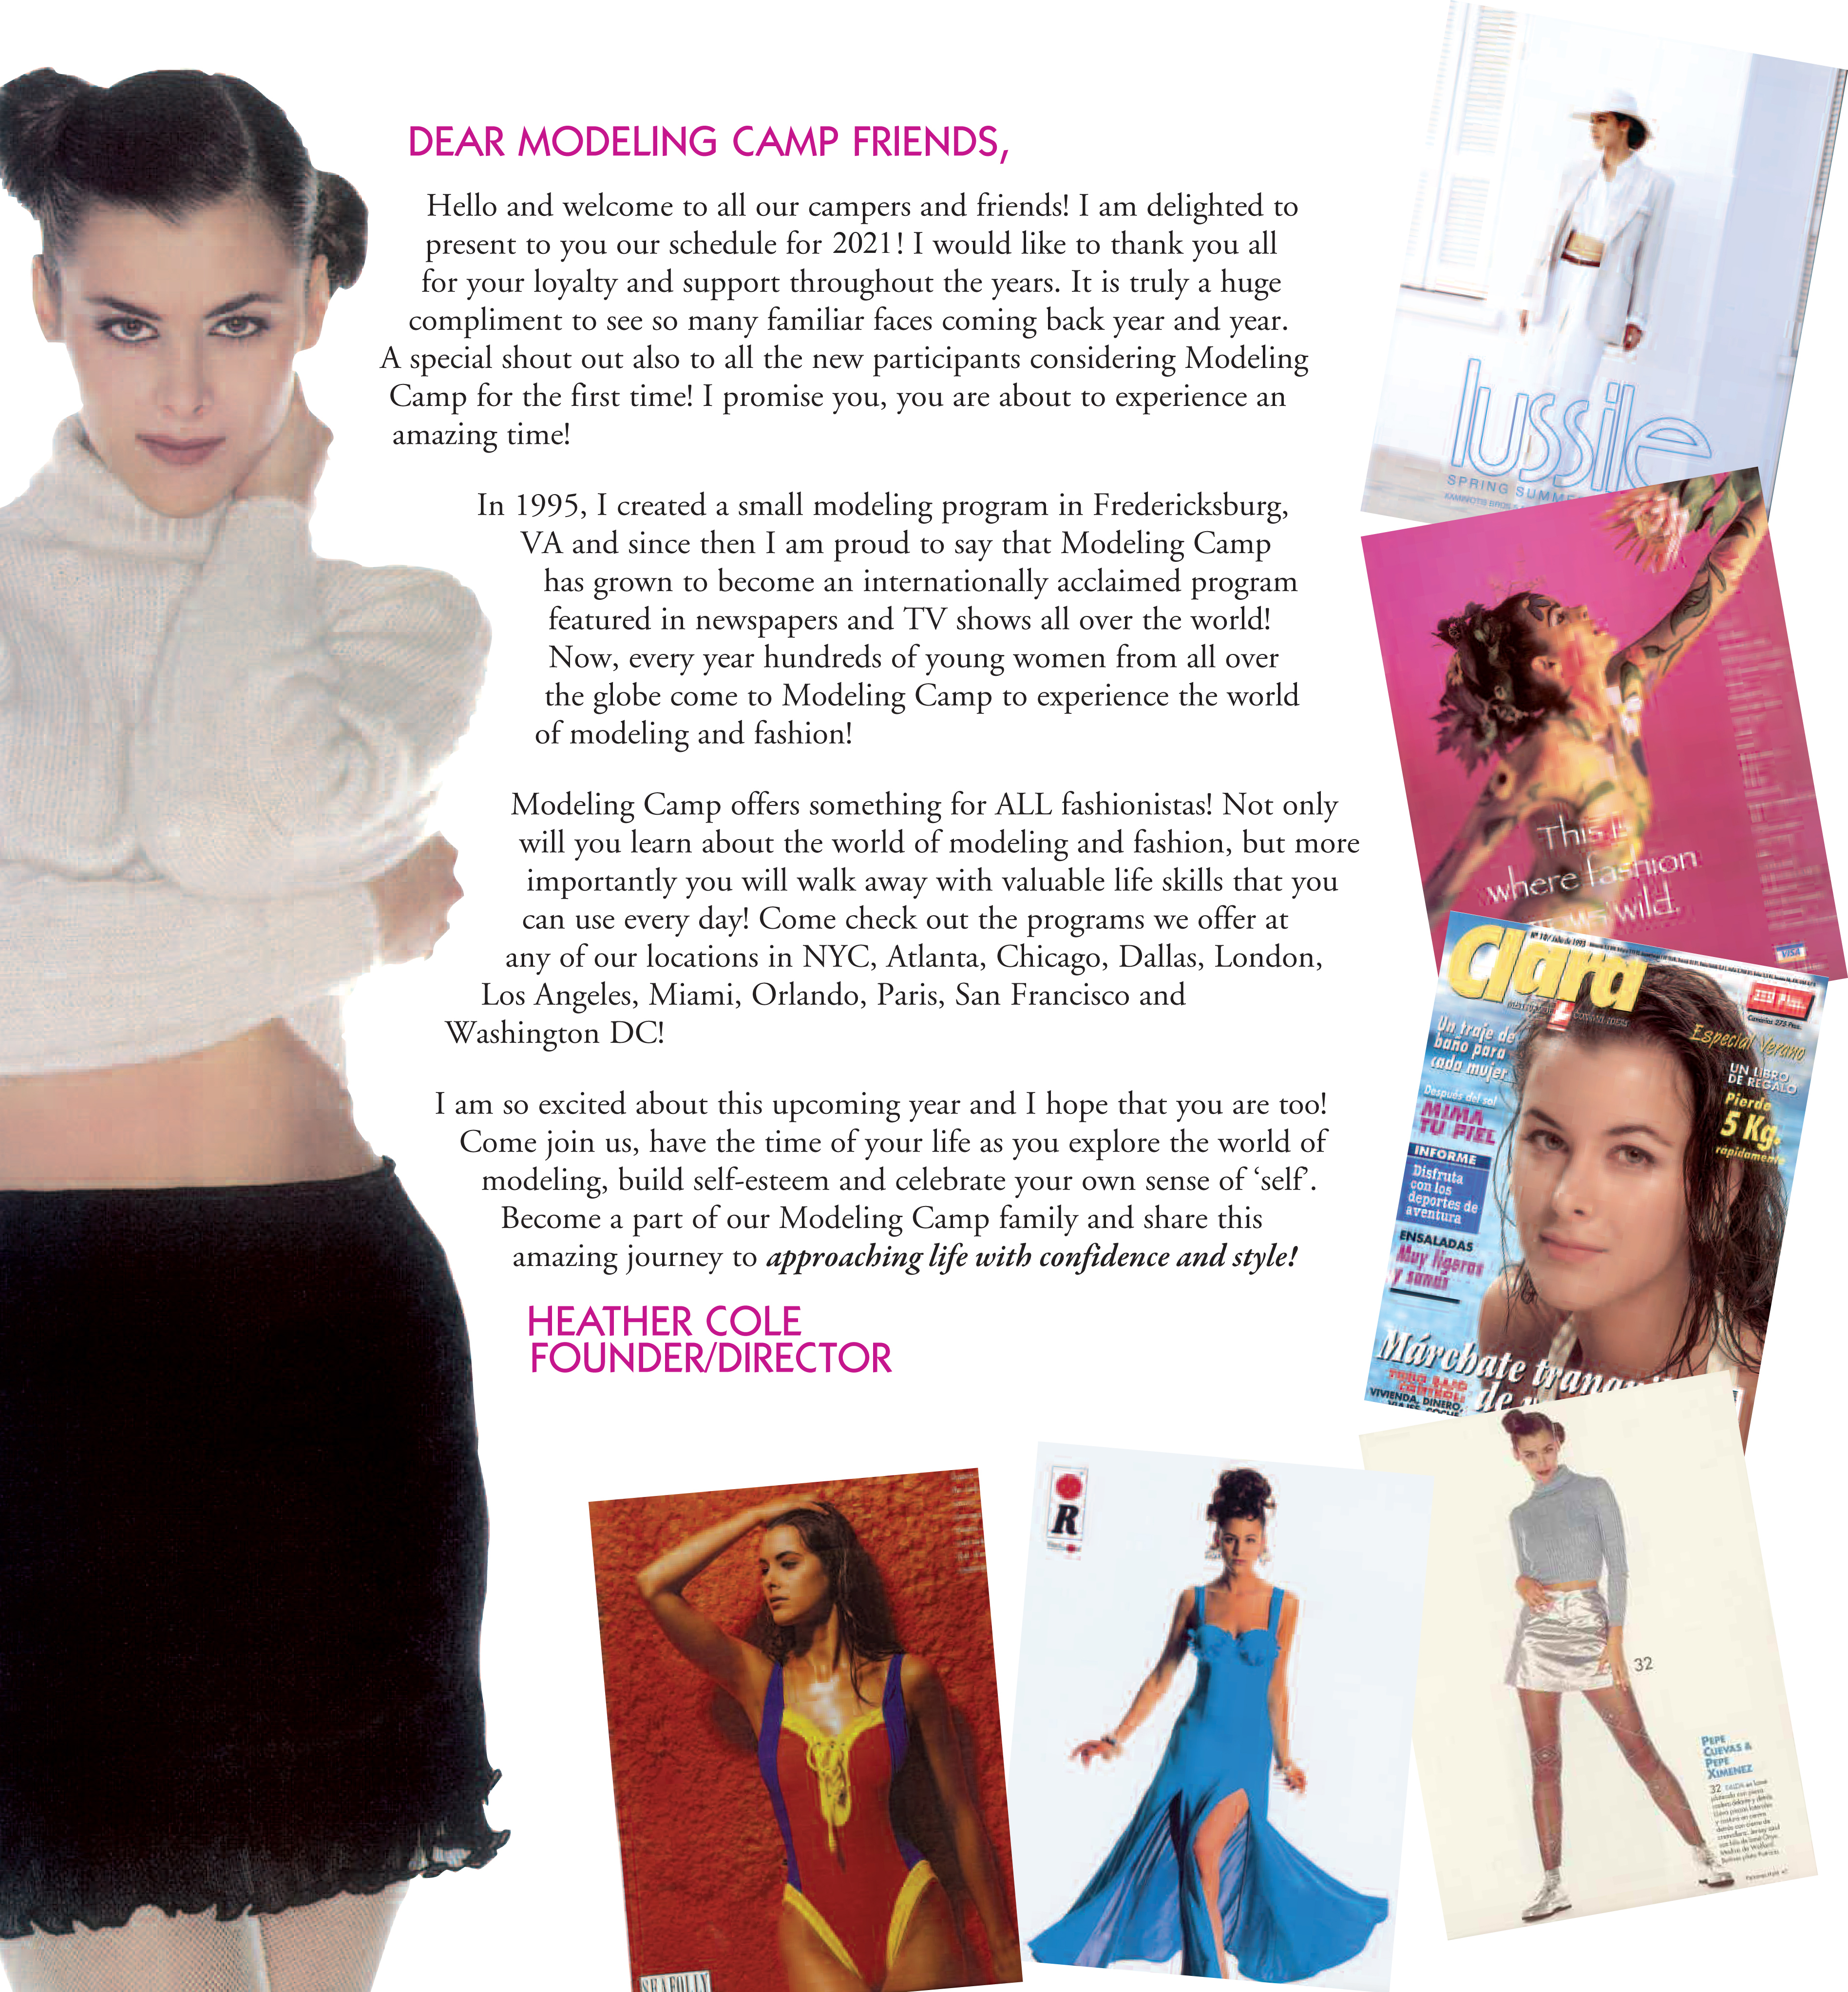 Modeling Camp Founder Heather Cole